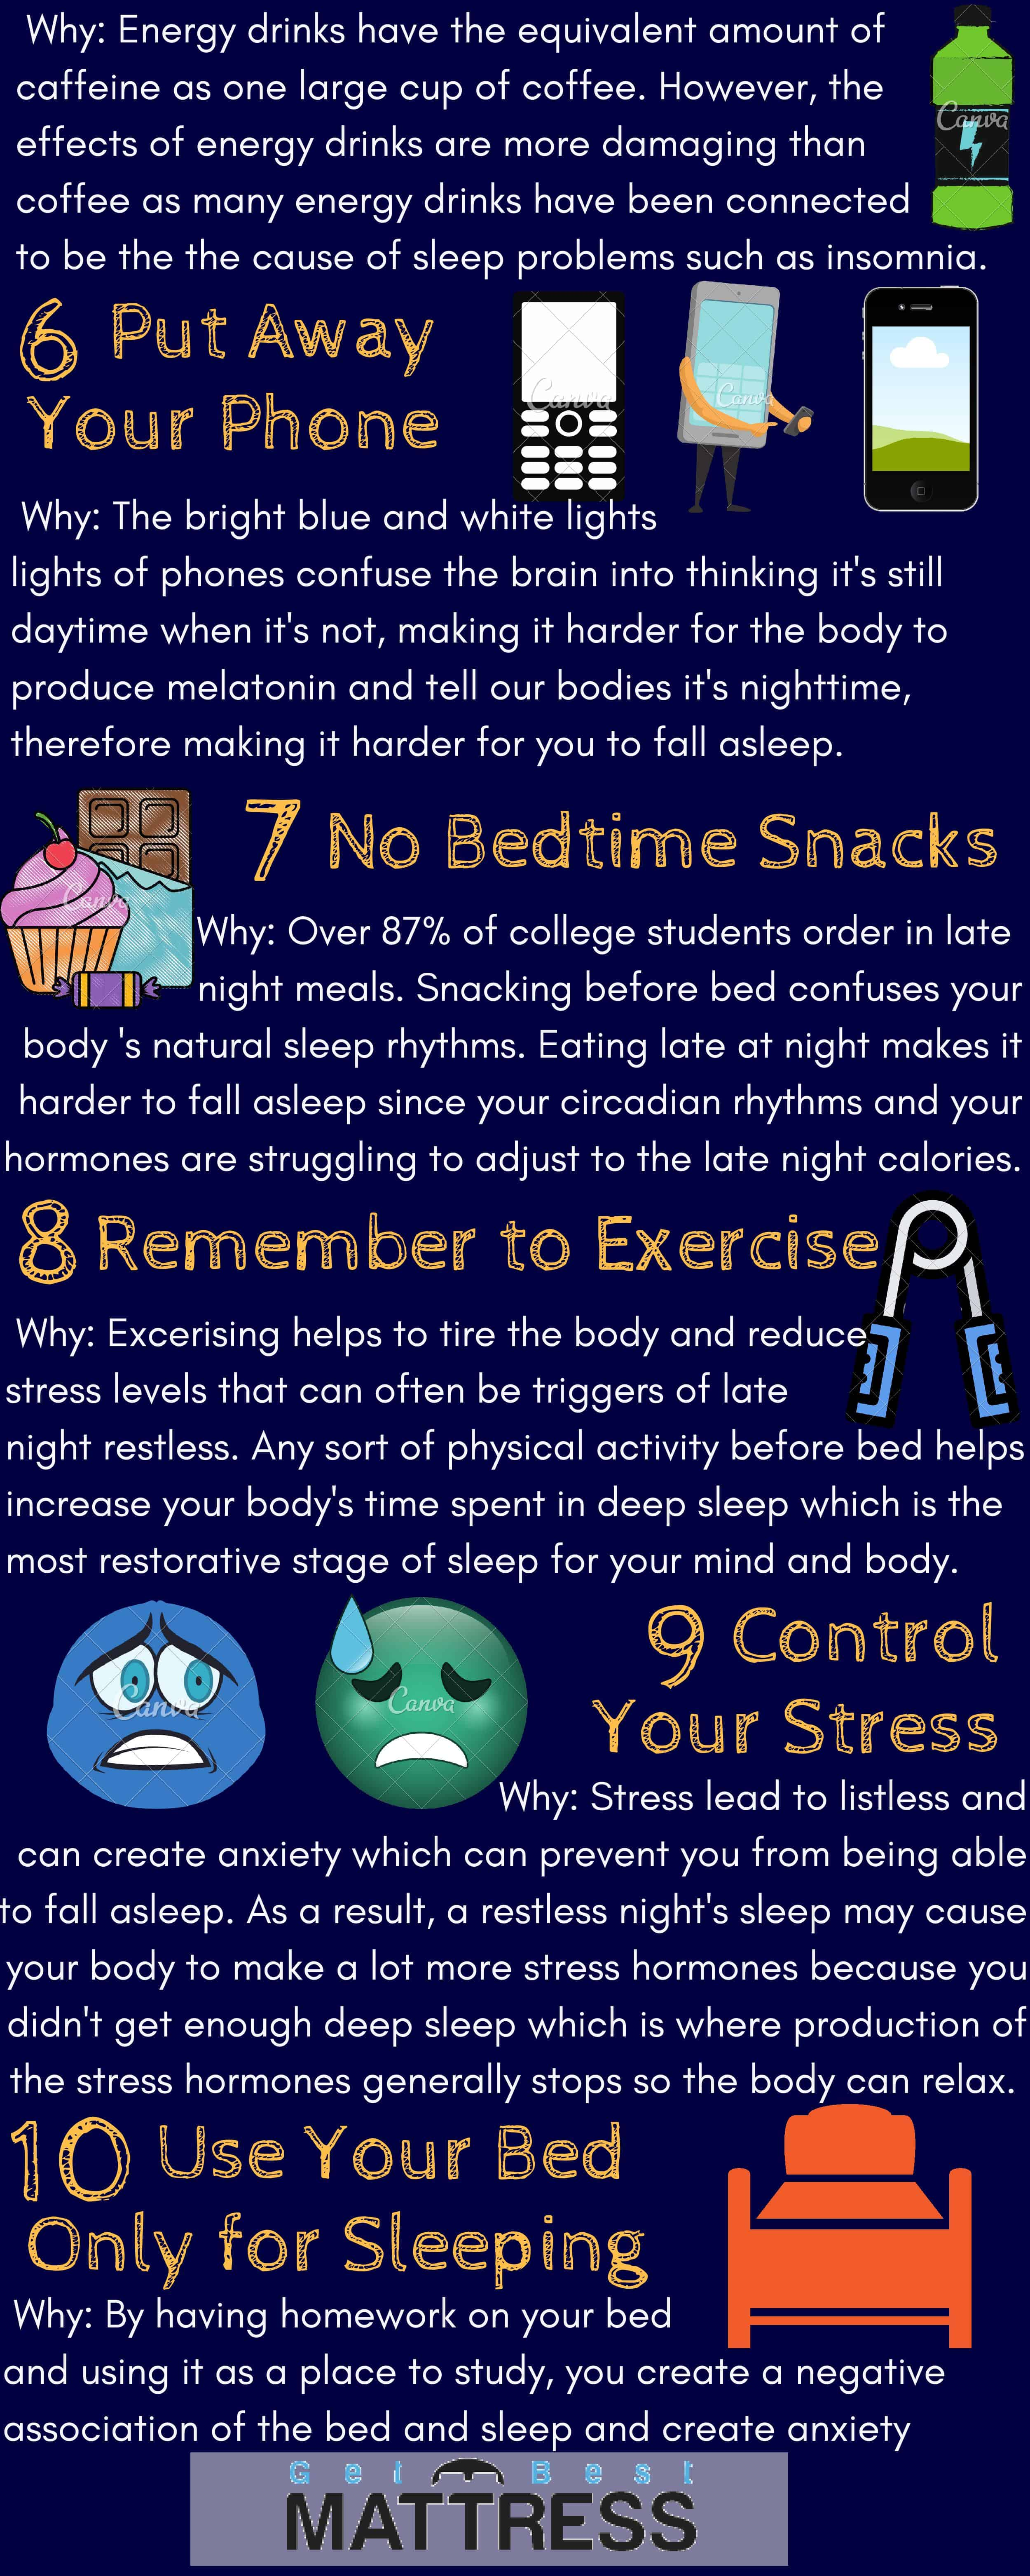 How to Sleep Better_ the Ultimate Guide for Tired sTUDENTS-page-002